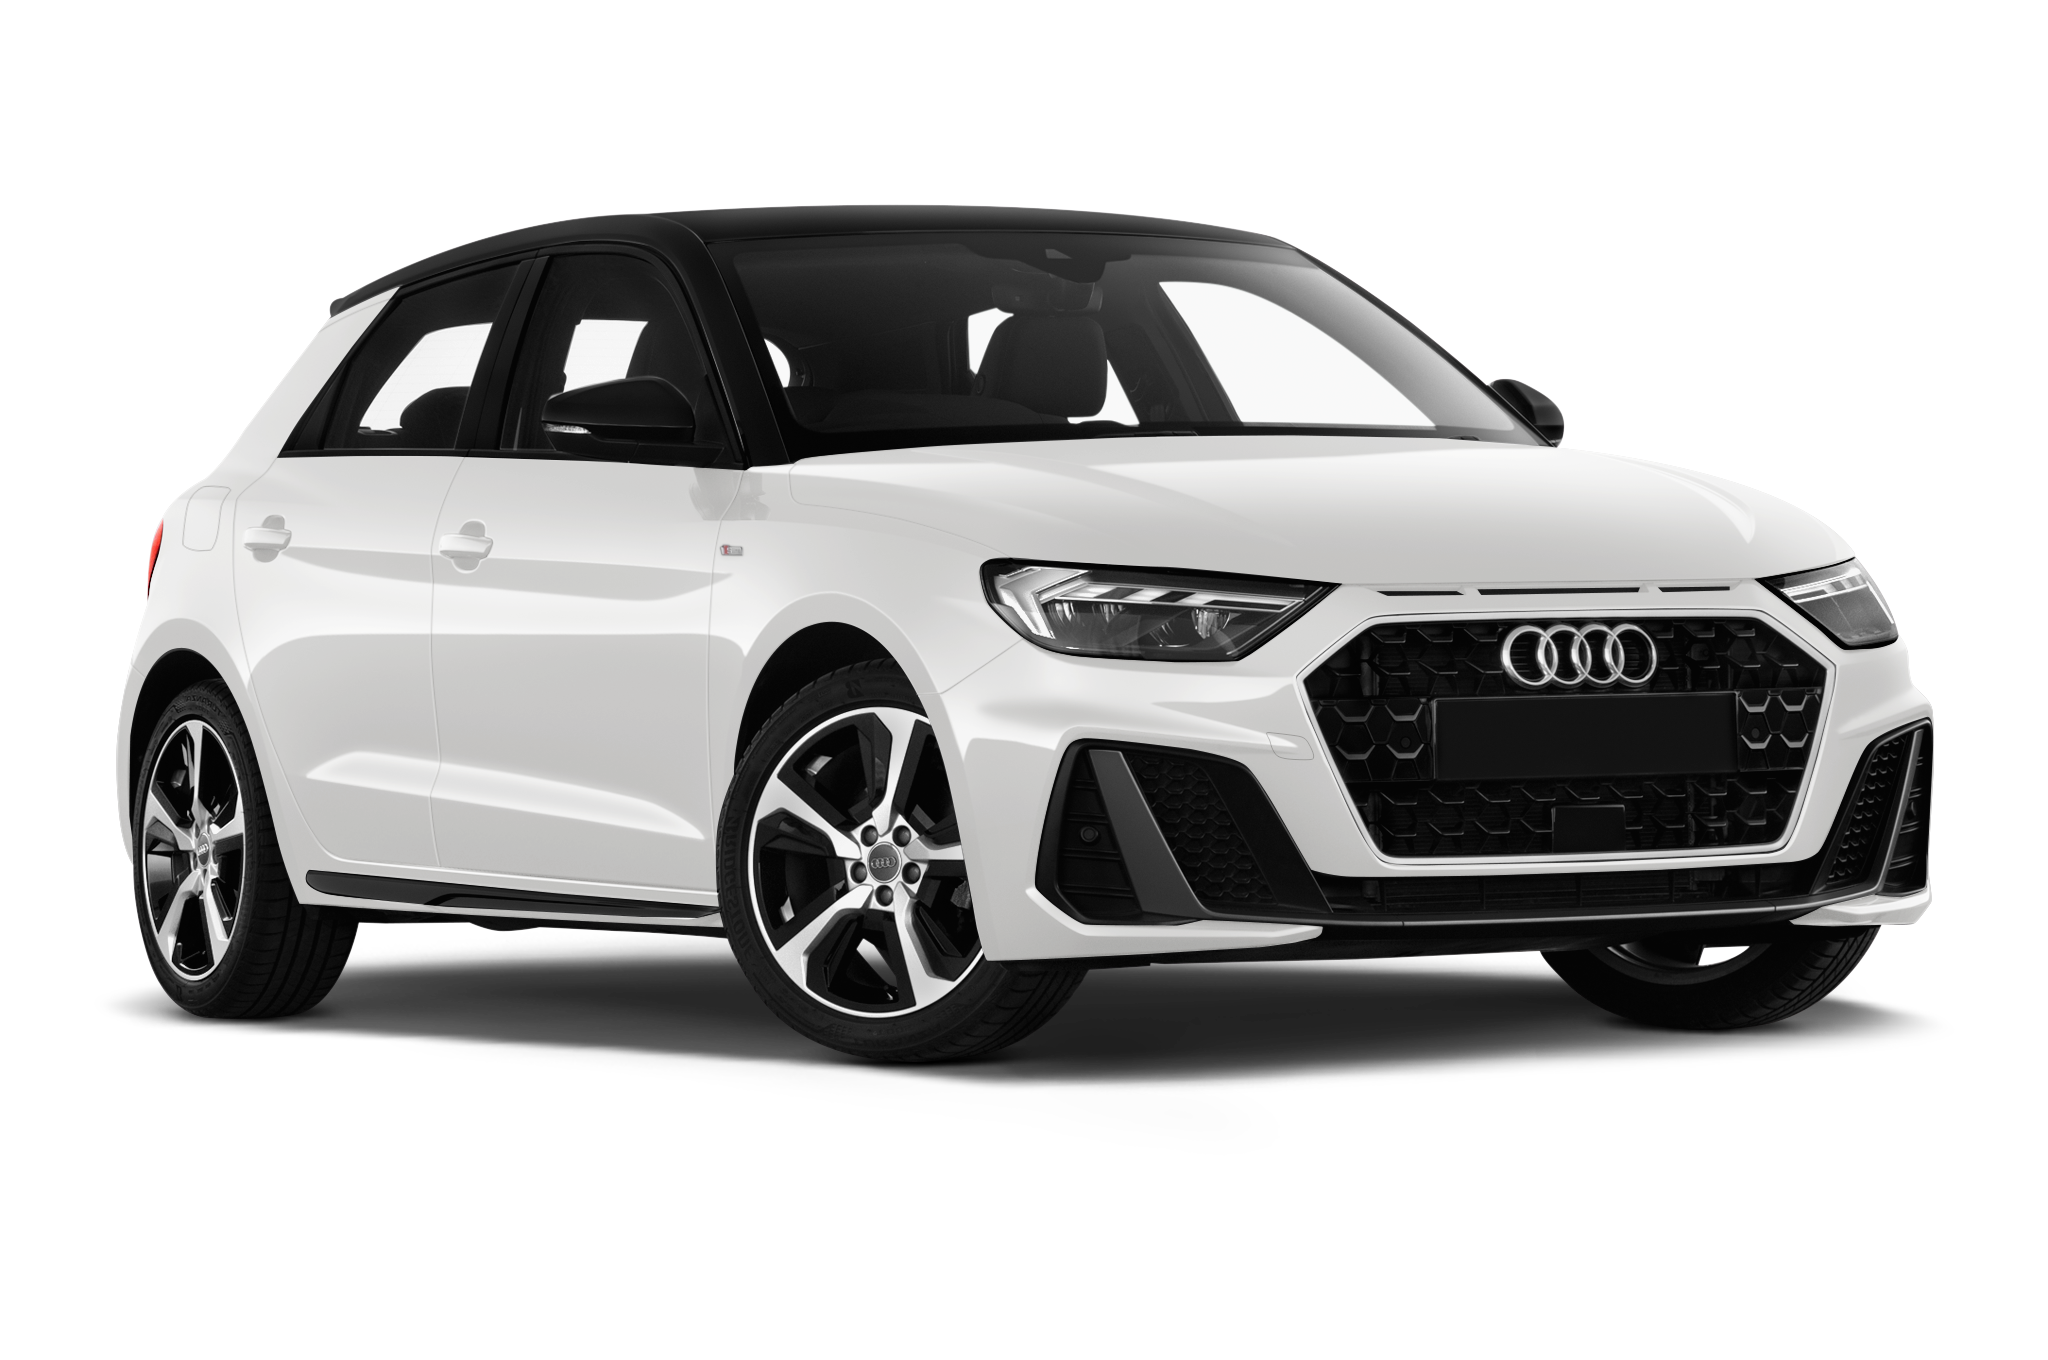 Audi A1 Sportback Lease Deals From 179pm Carwow